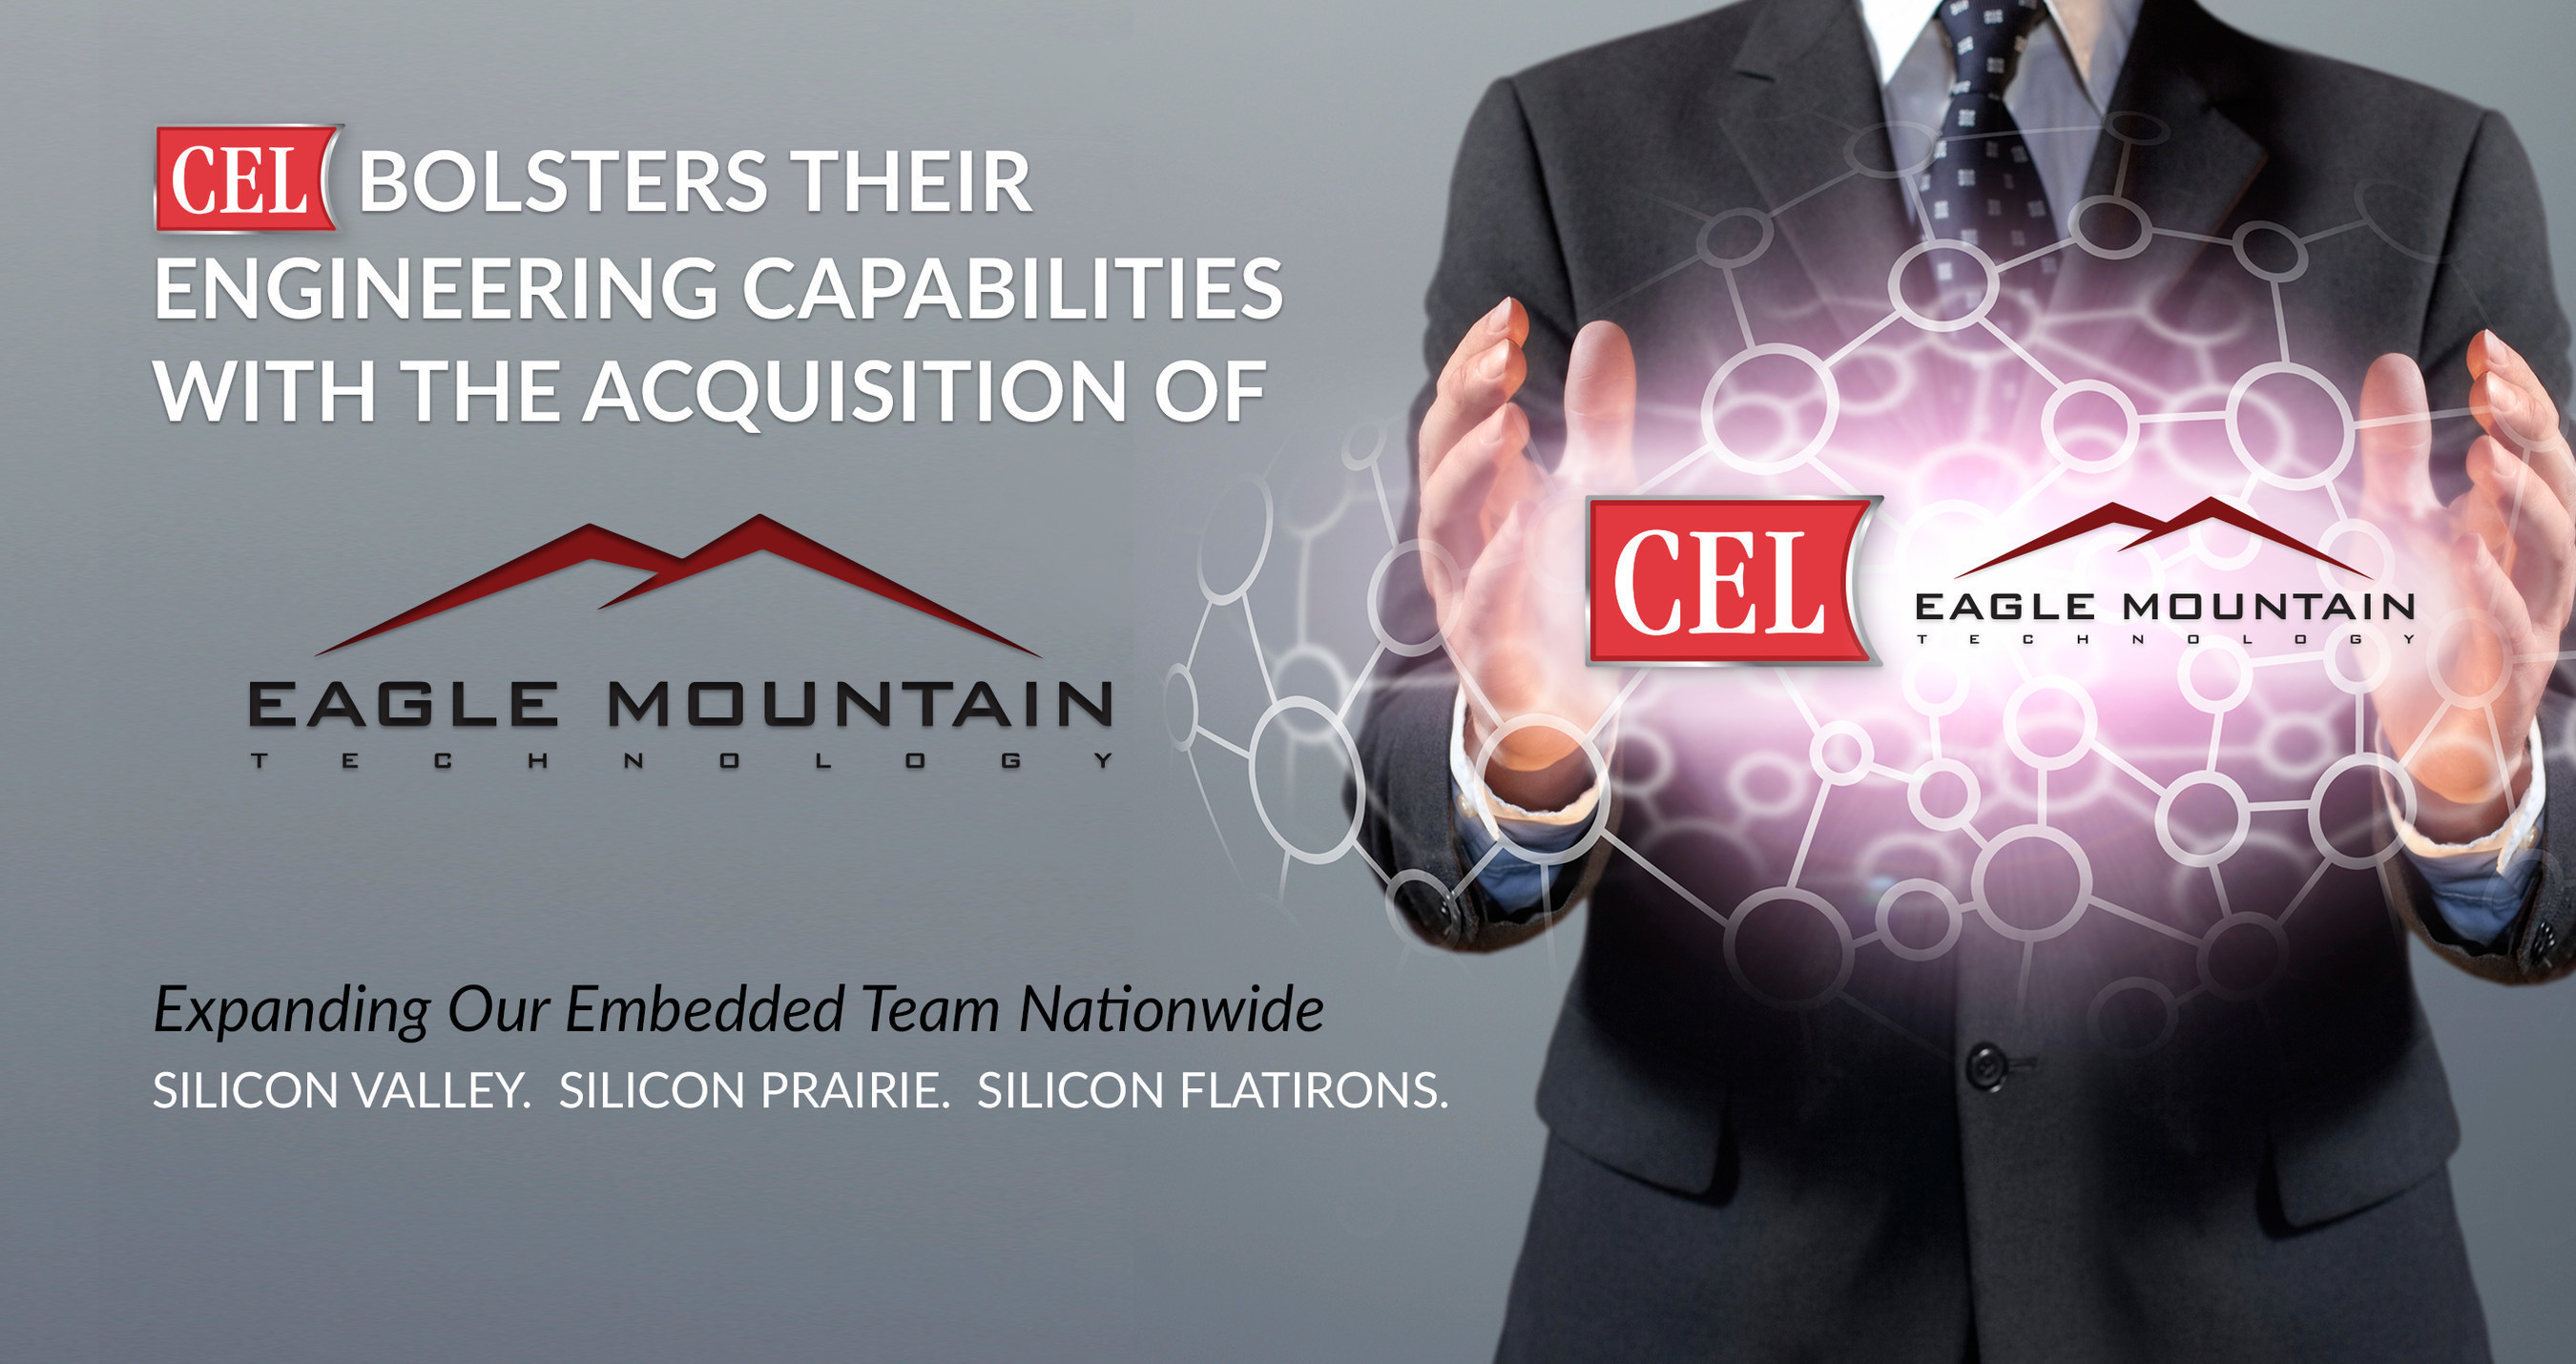 CEL Expands Engineering Team Through the Acquisition of Eagle Mountain Technology